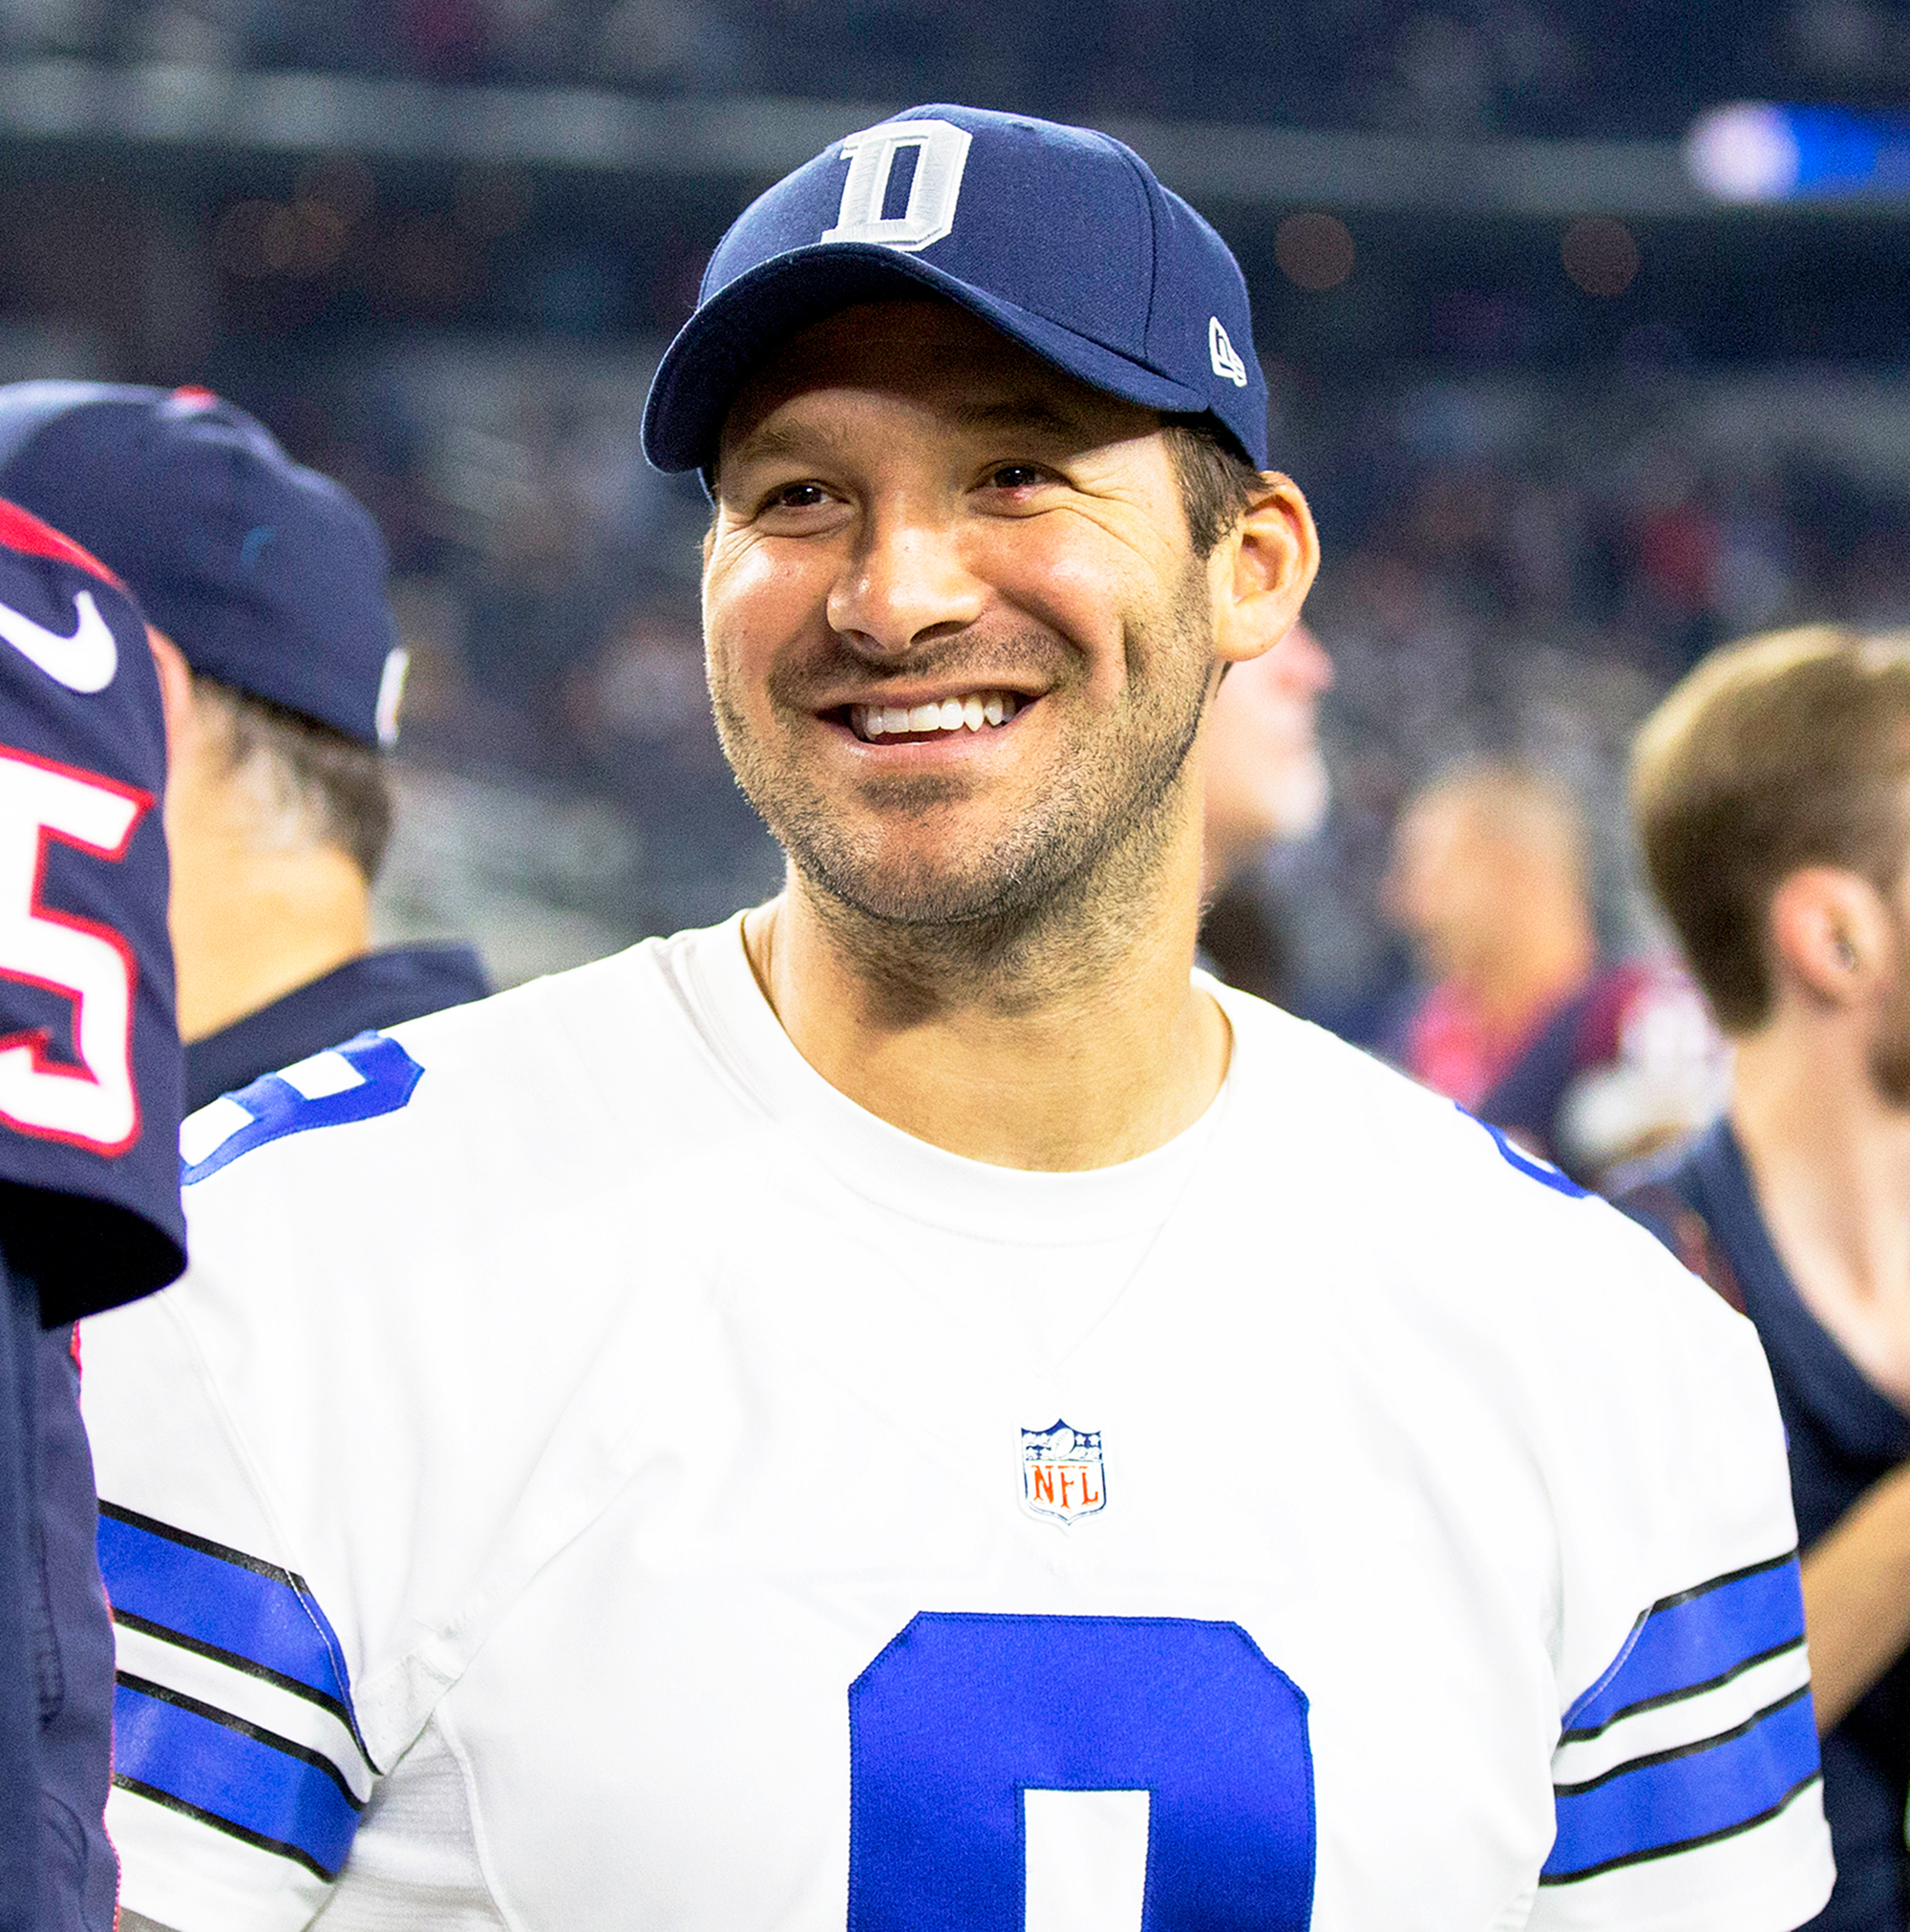 Tony Romo Photos Pictures of Tony Romo